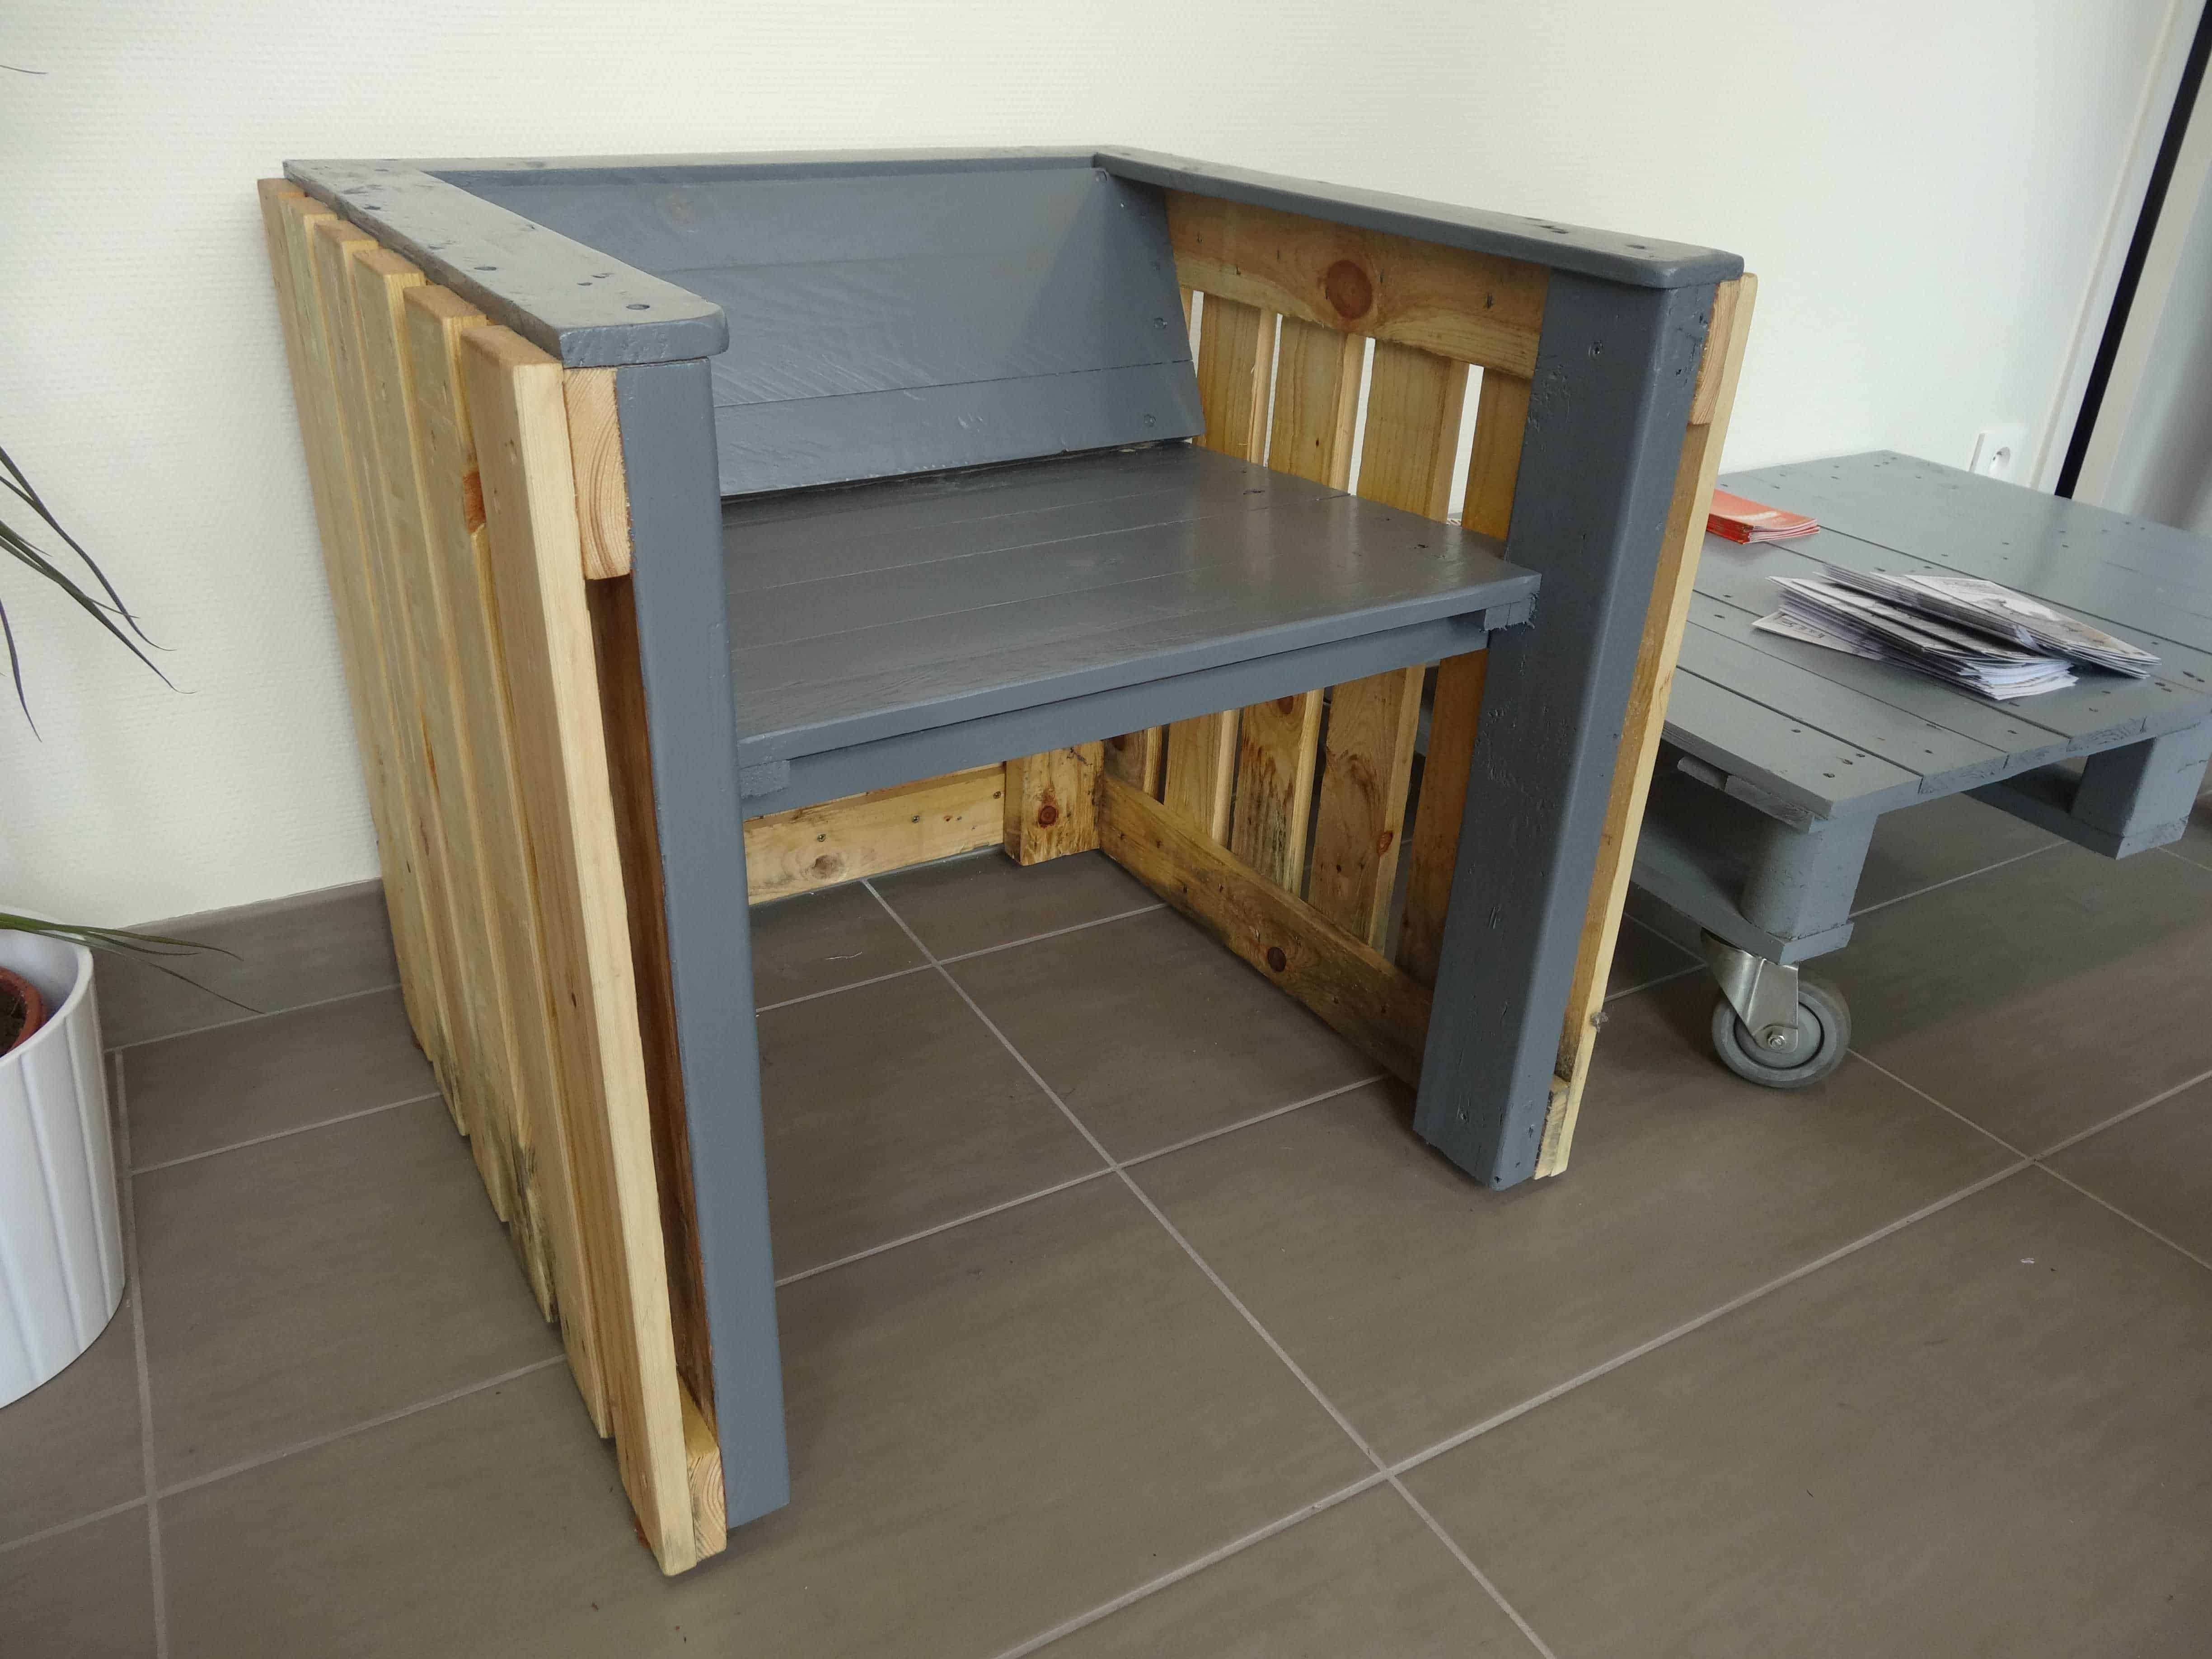 Pallet armchair - Pallet Armchair Inspired By Mies Van Der Rohe Pallet Ideas 1001 Pallets